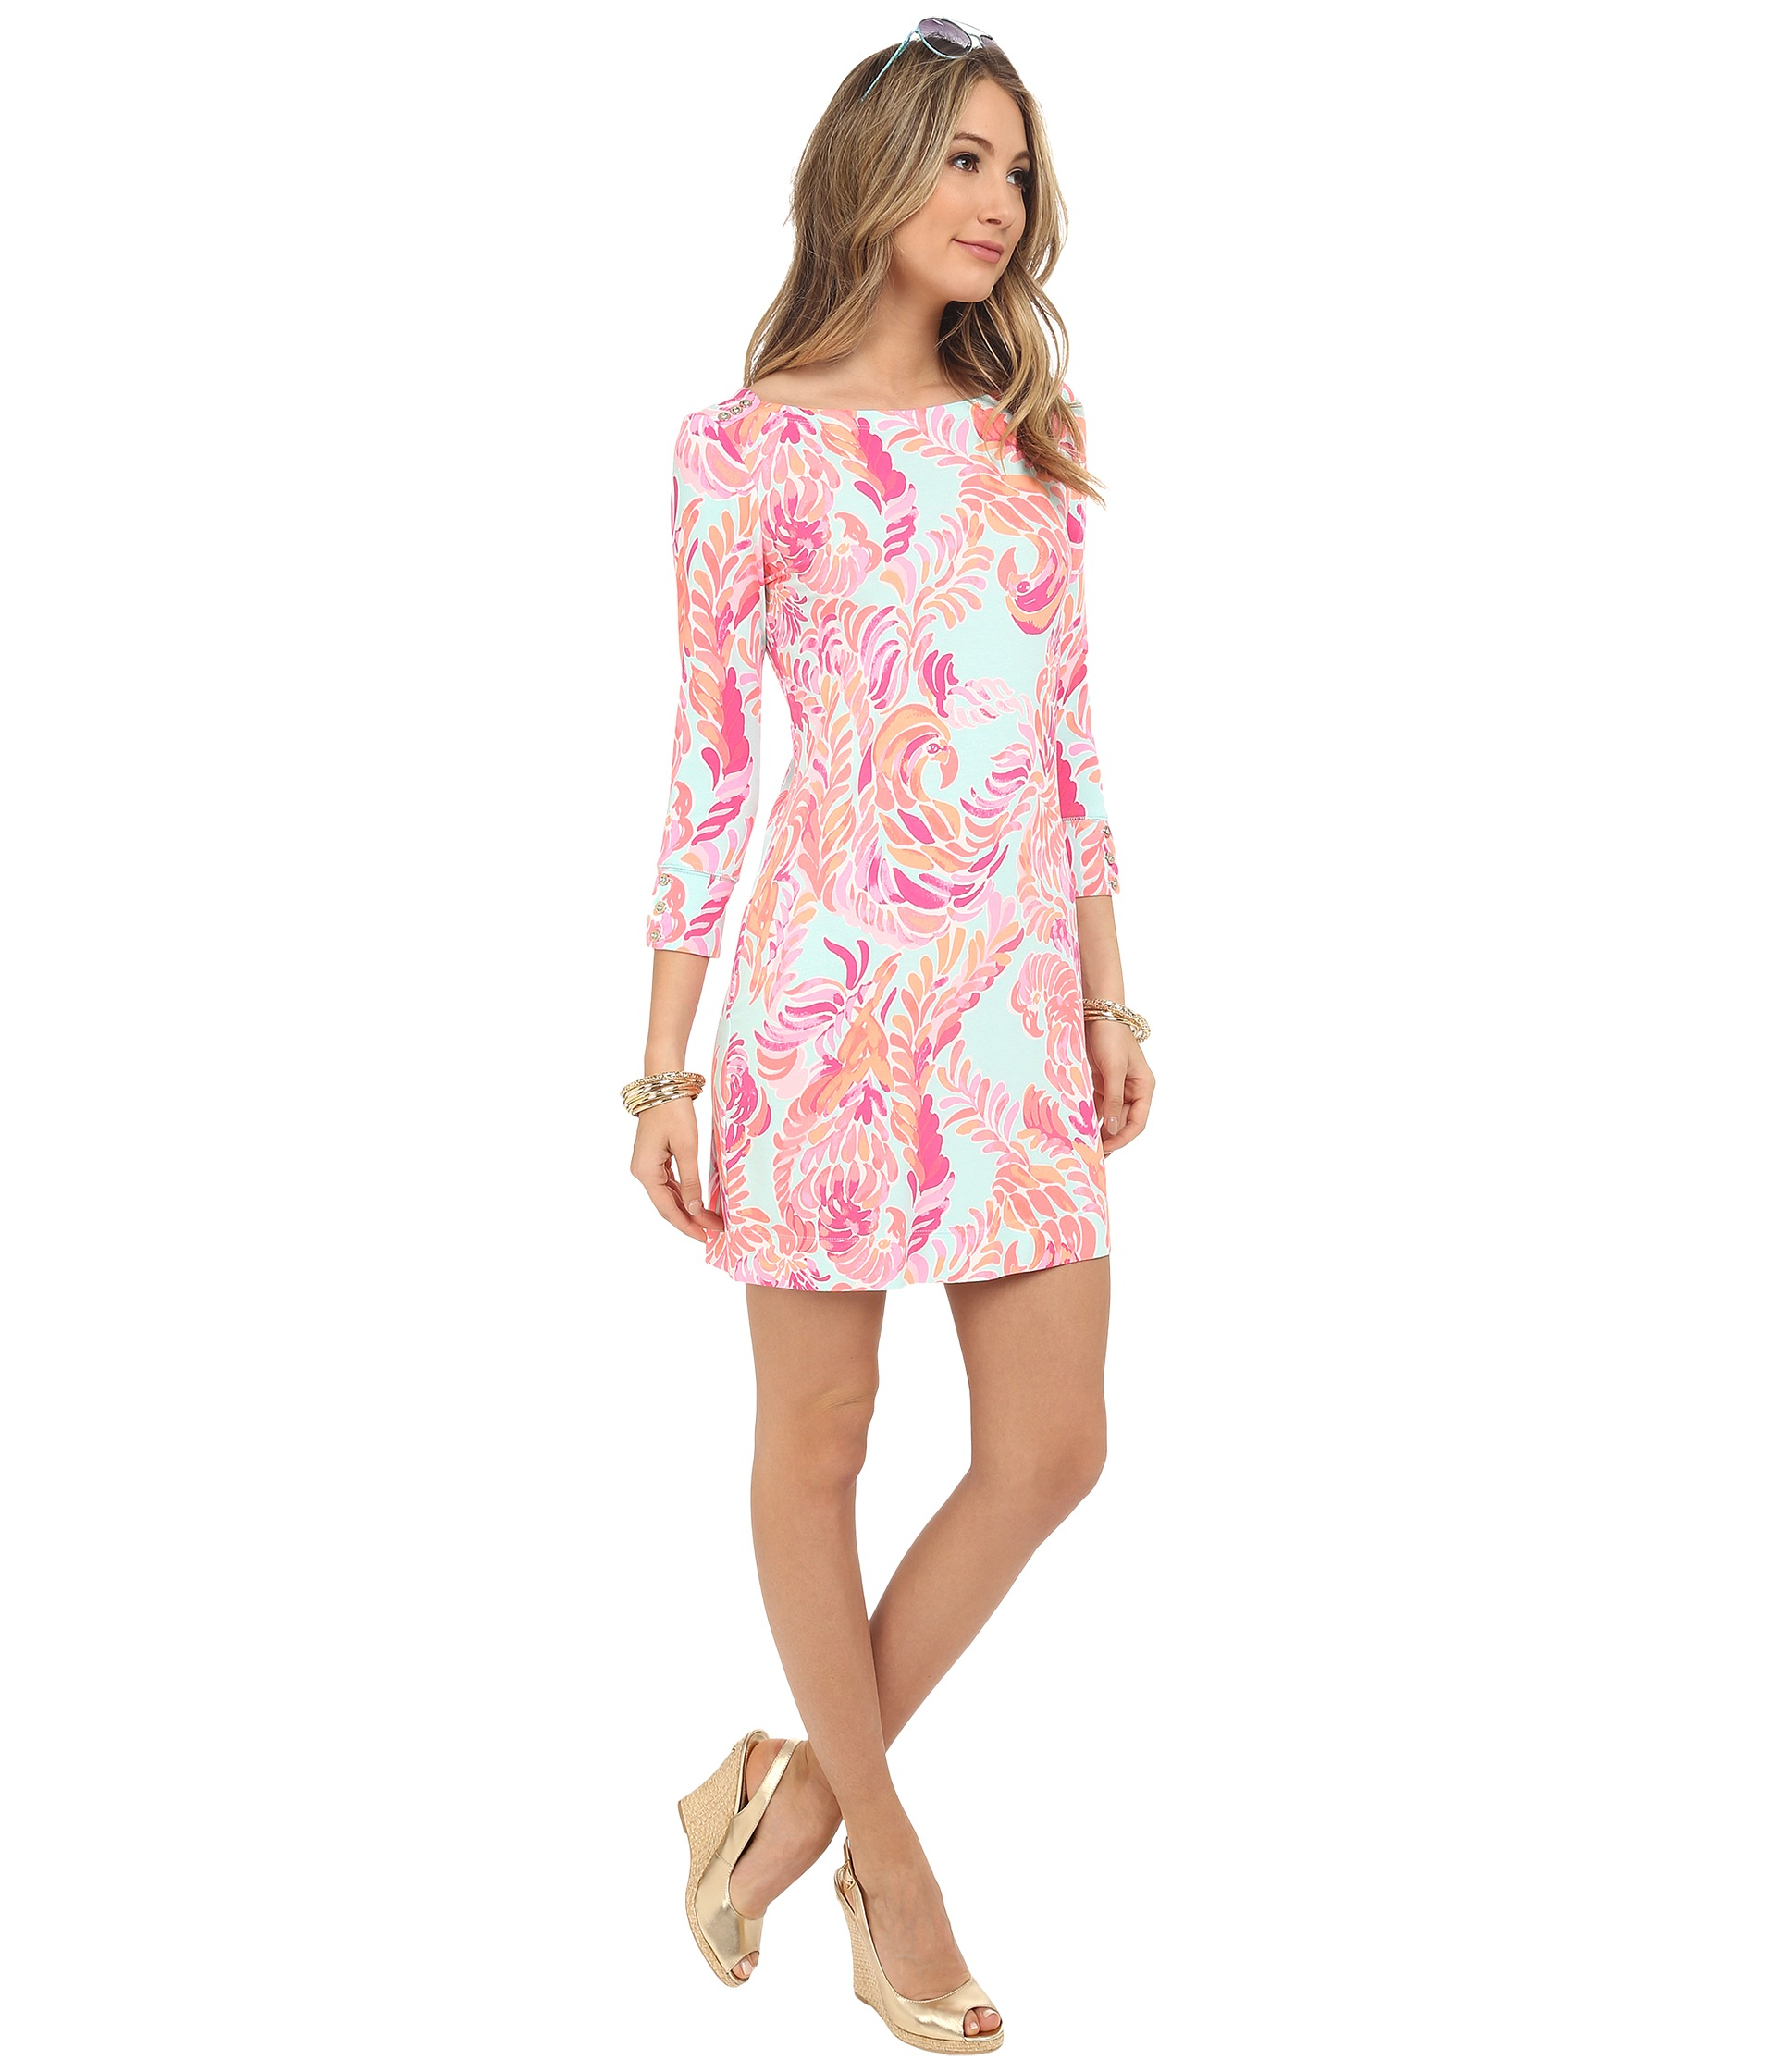 Sophie Dress: Lilly Pulitzer Upf 50+ Sophie Dress In Pink